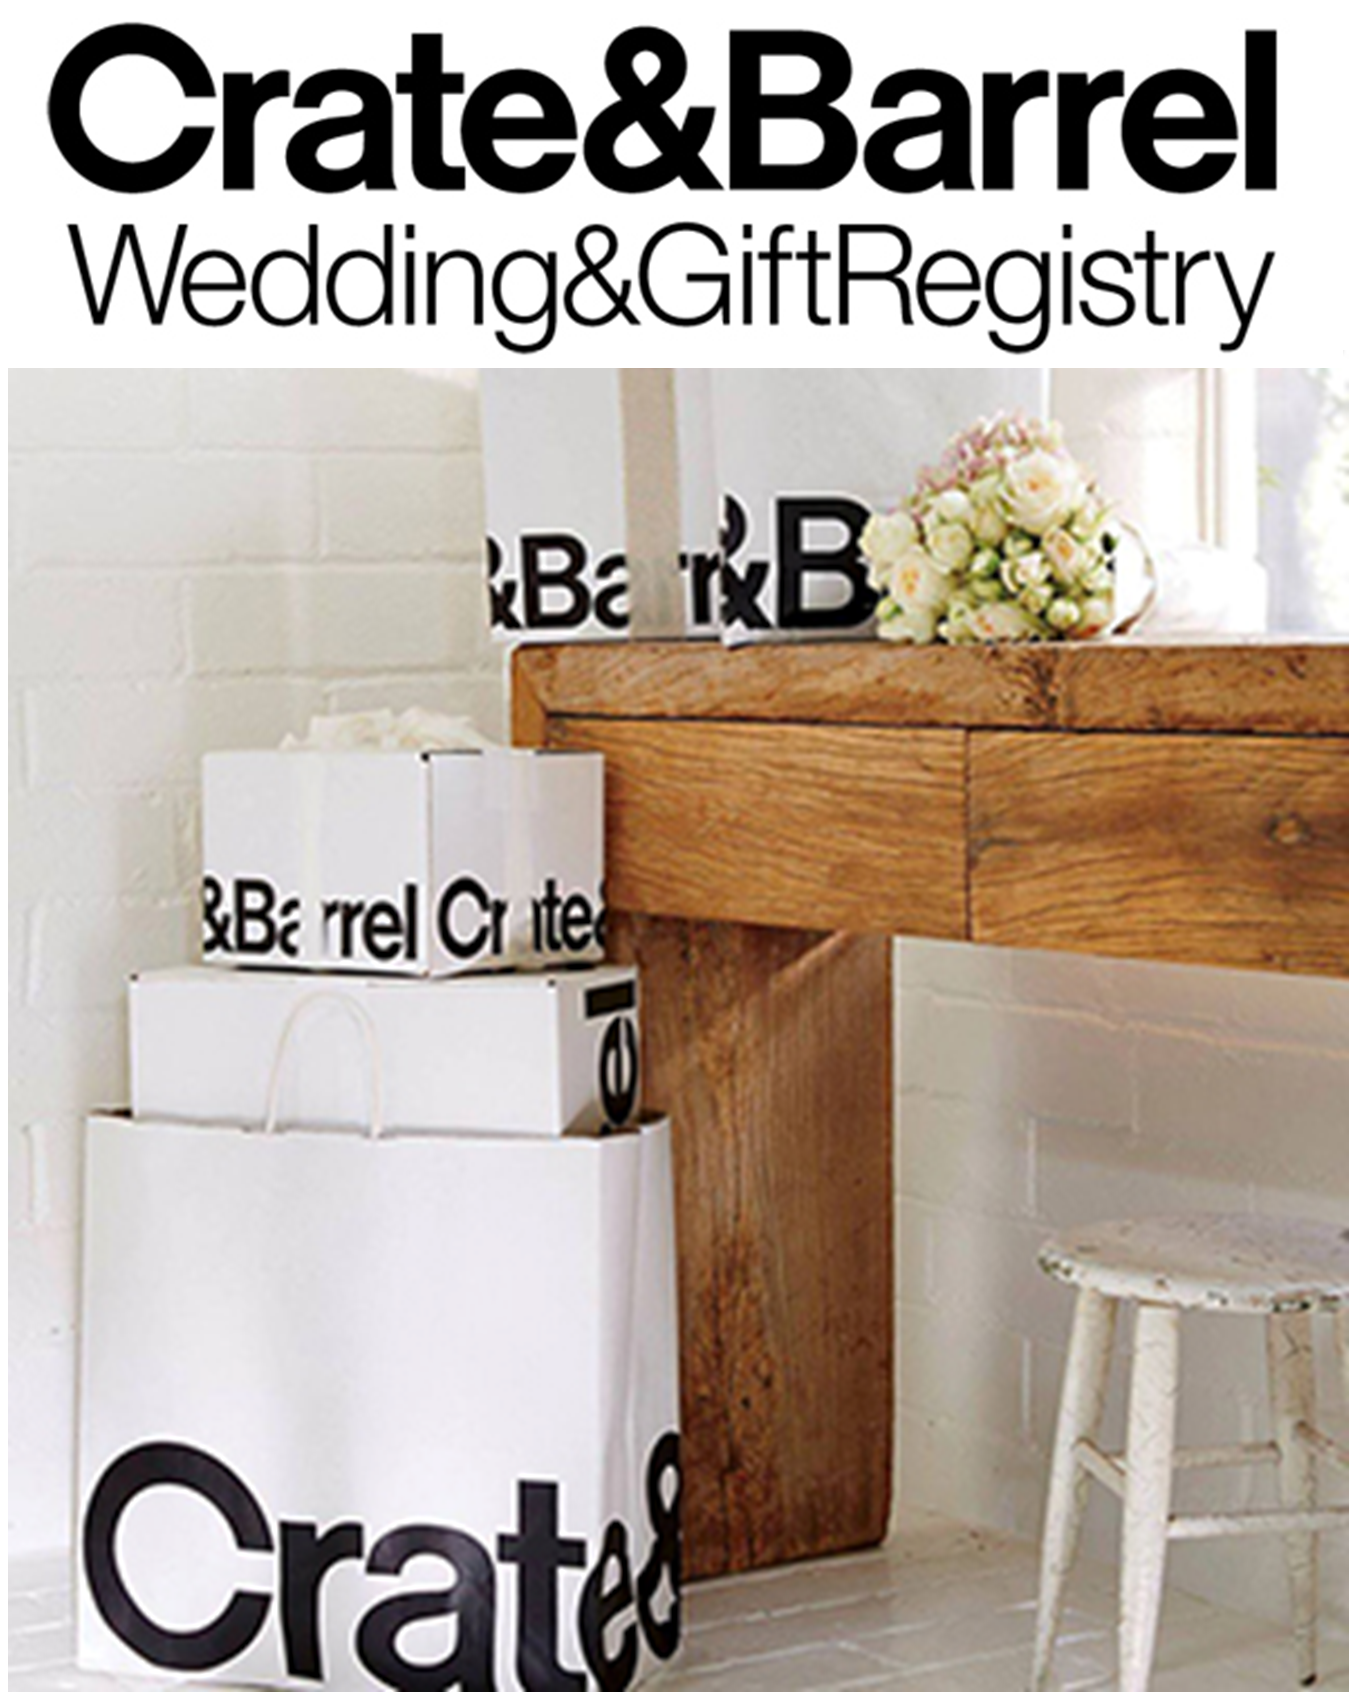 Crate&Barrel - Best Places to Create Your Wedding Gift Registry, Part 1 - RegistryFinder.com